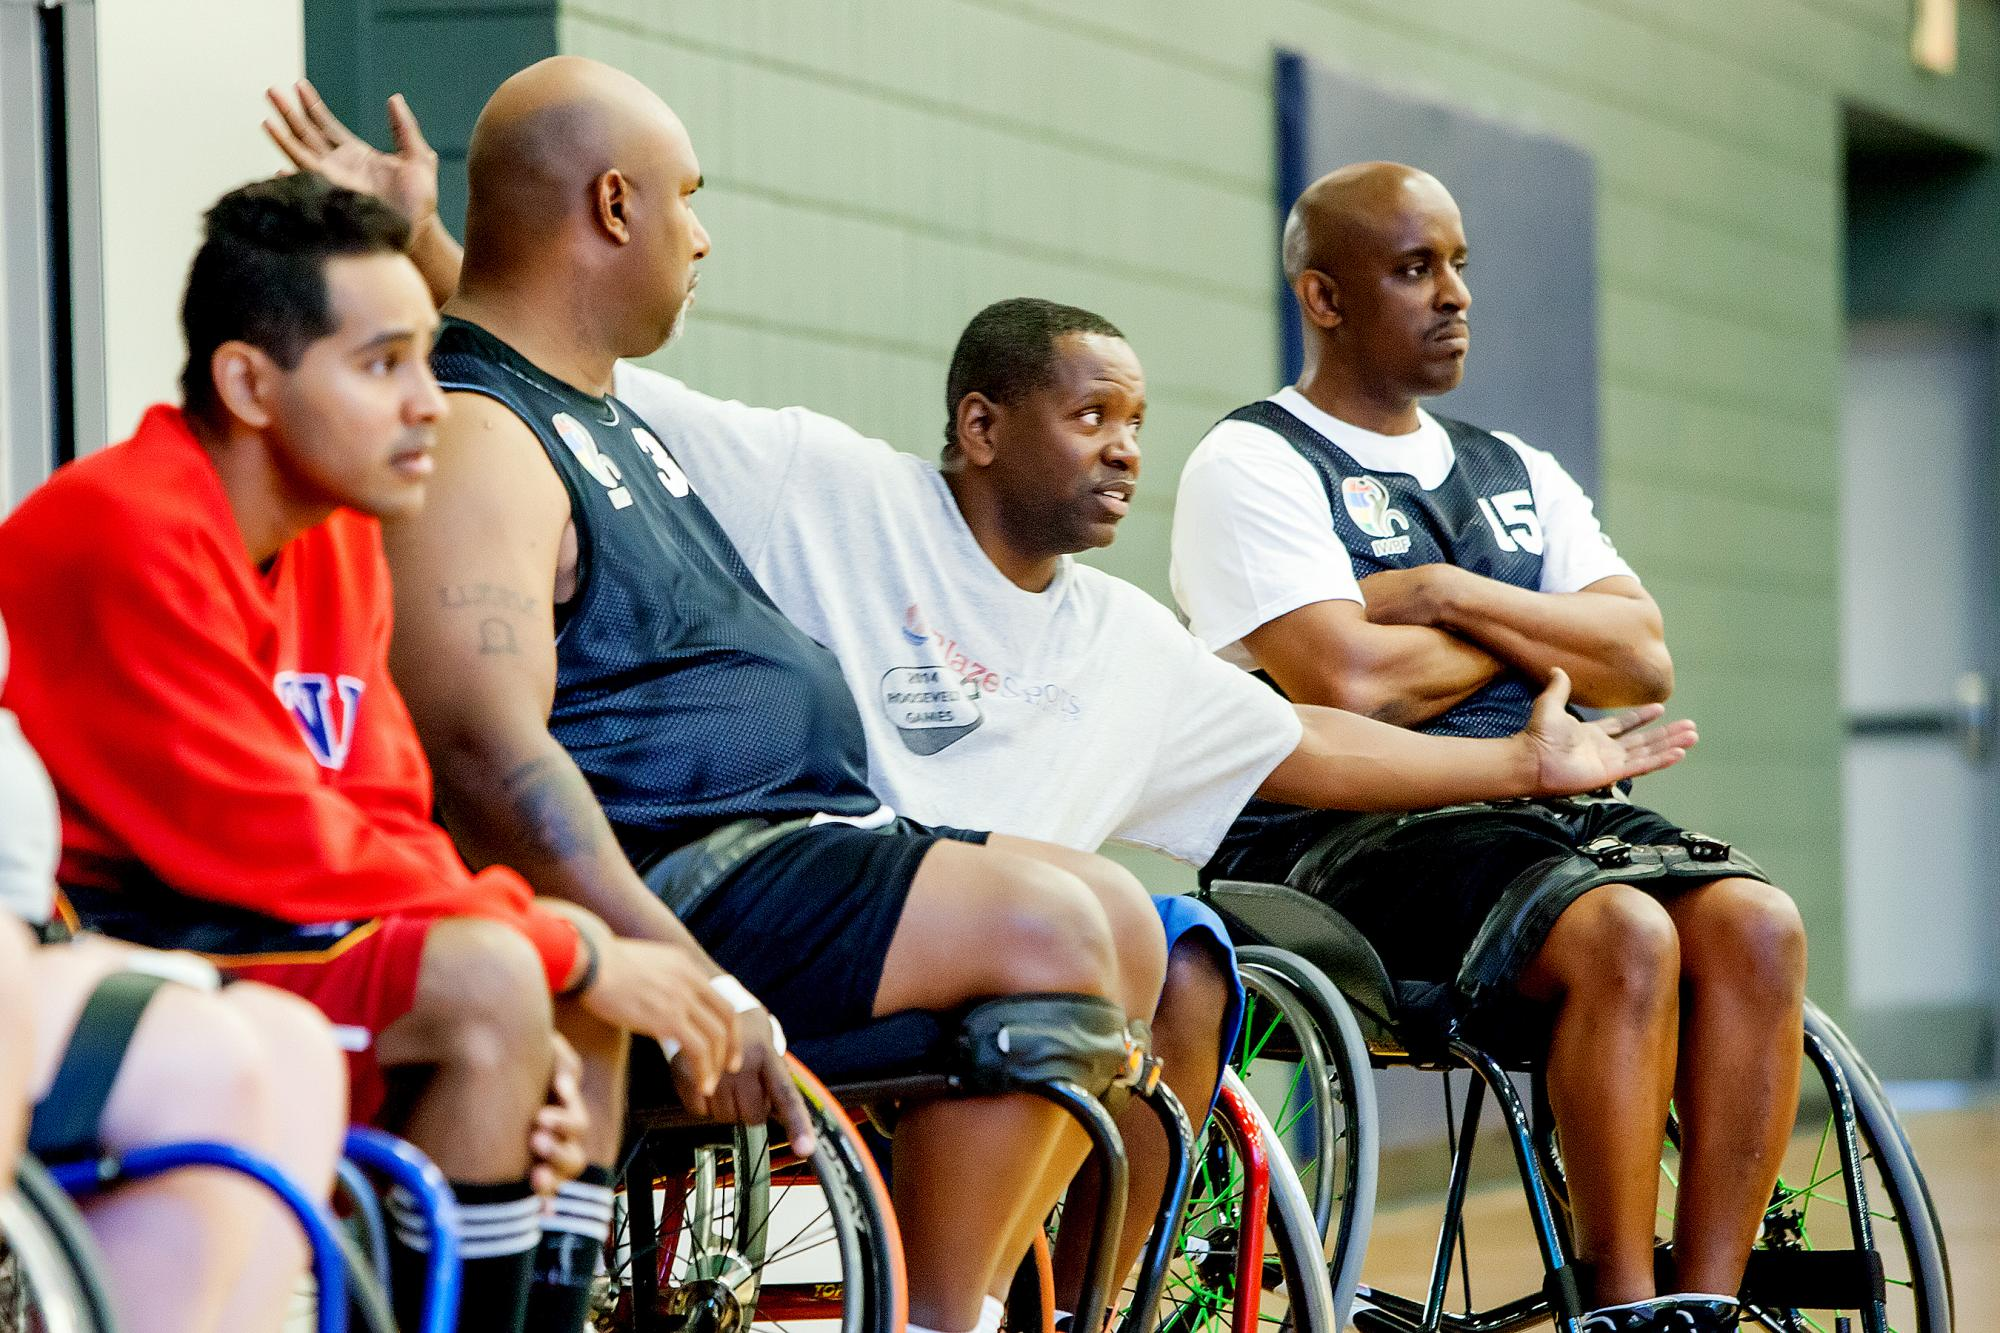 Carl Morgan, from Atlanta, shows his mobility to the coaches during a discussion about positions on a wheelchair basketball team. Morgan is flanked by his friend Derrick McMillon and Robert Jones, both from Georgia.